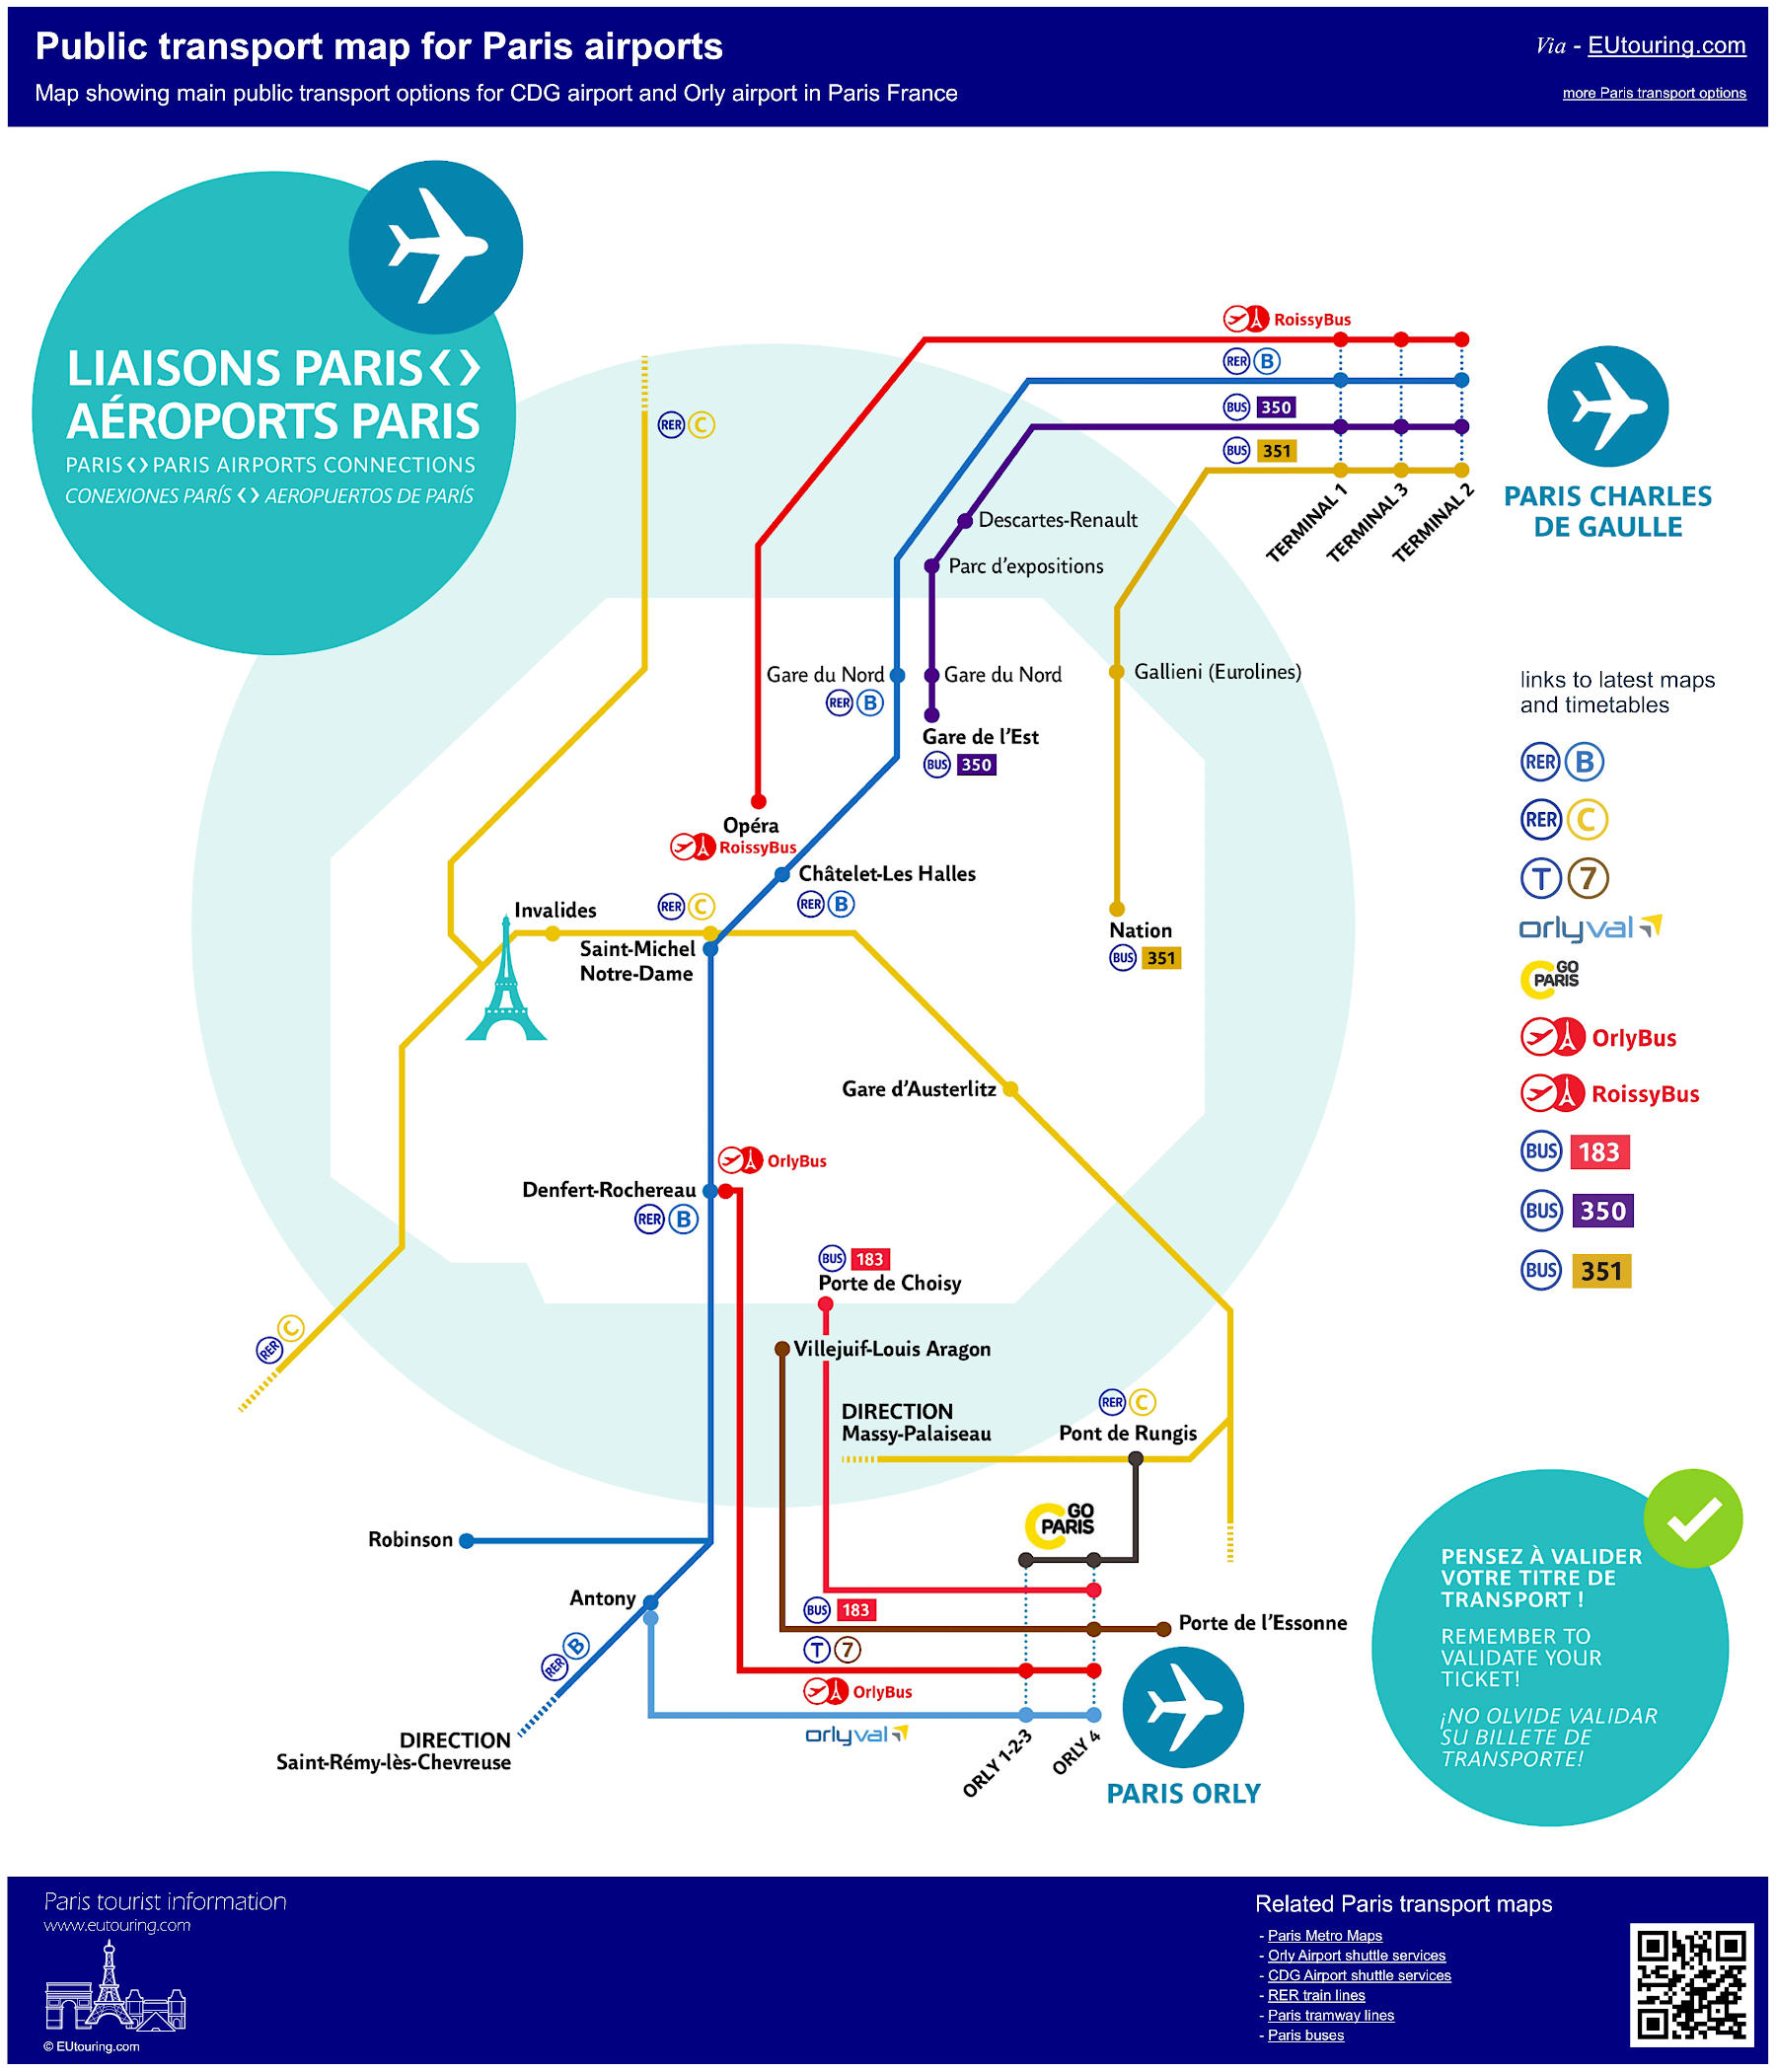 Paris Airports Map Public Transport Maps Of Trains, Trams And Buses For Paris Airports